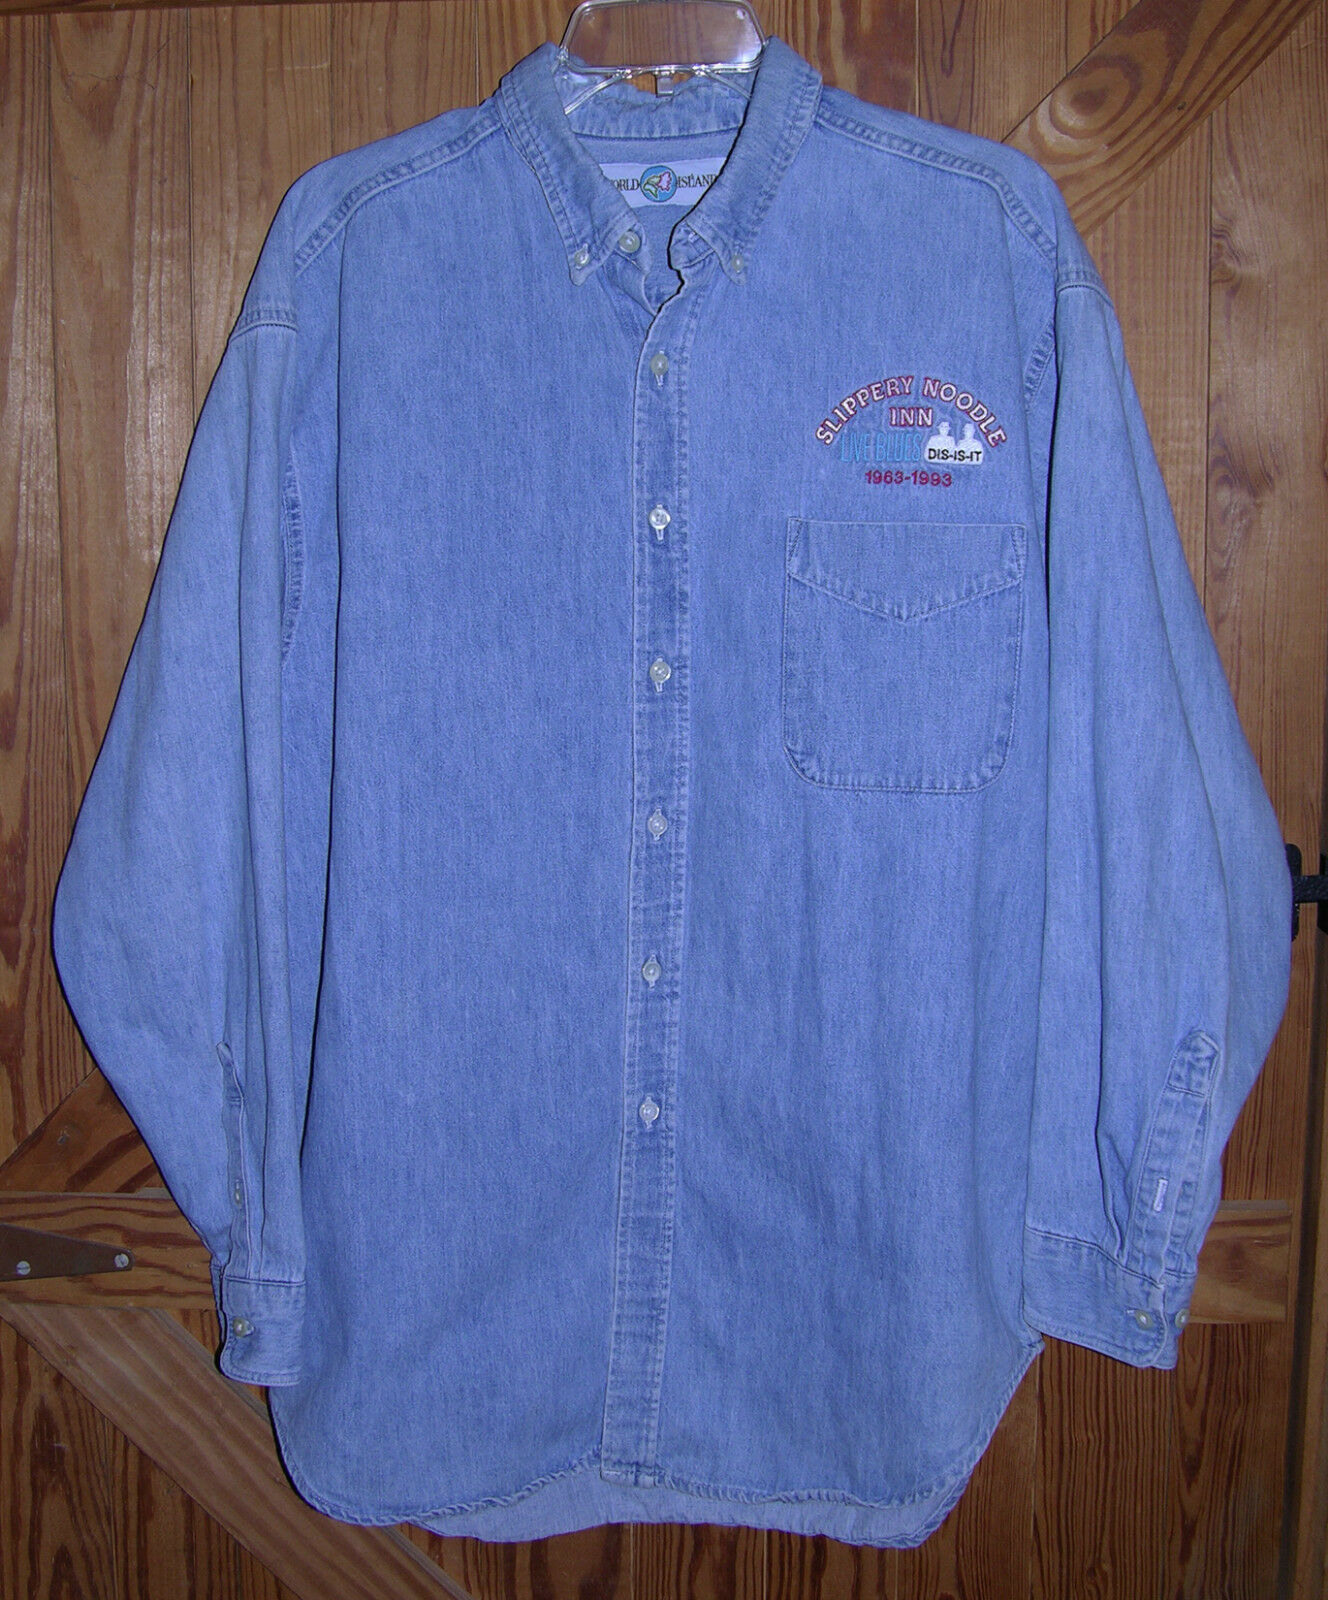 Vintage Slippery Noodle Inn Embroidered Front And Back Men s Denim Shirt - $65.00